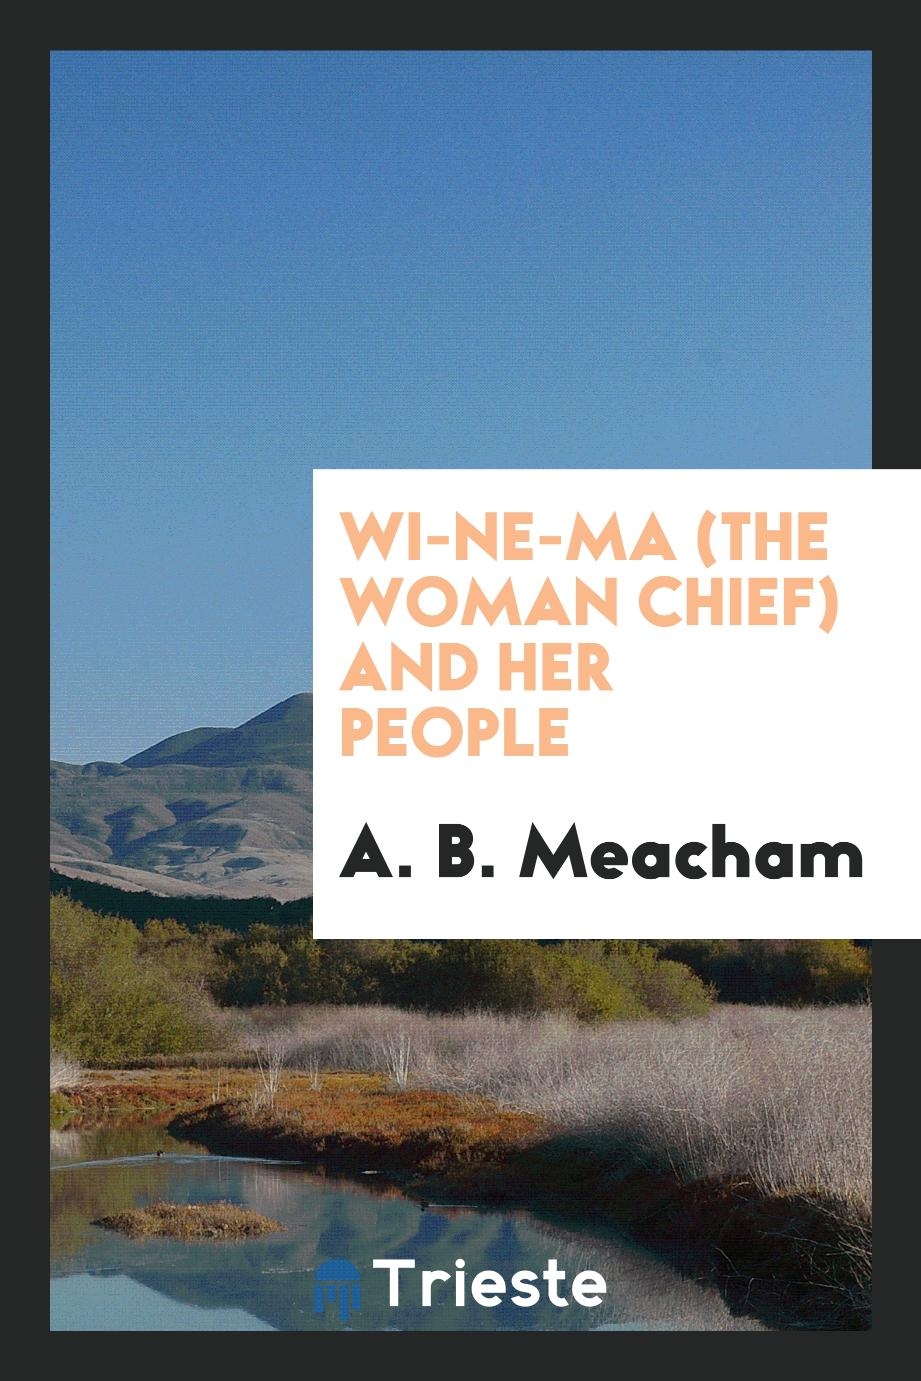 Wi-ne-ma (the woman chief) and her people